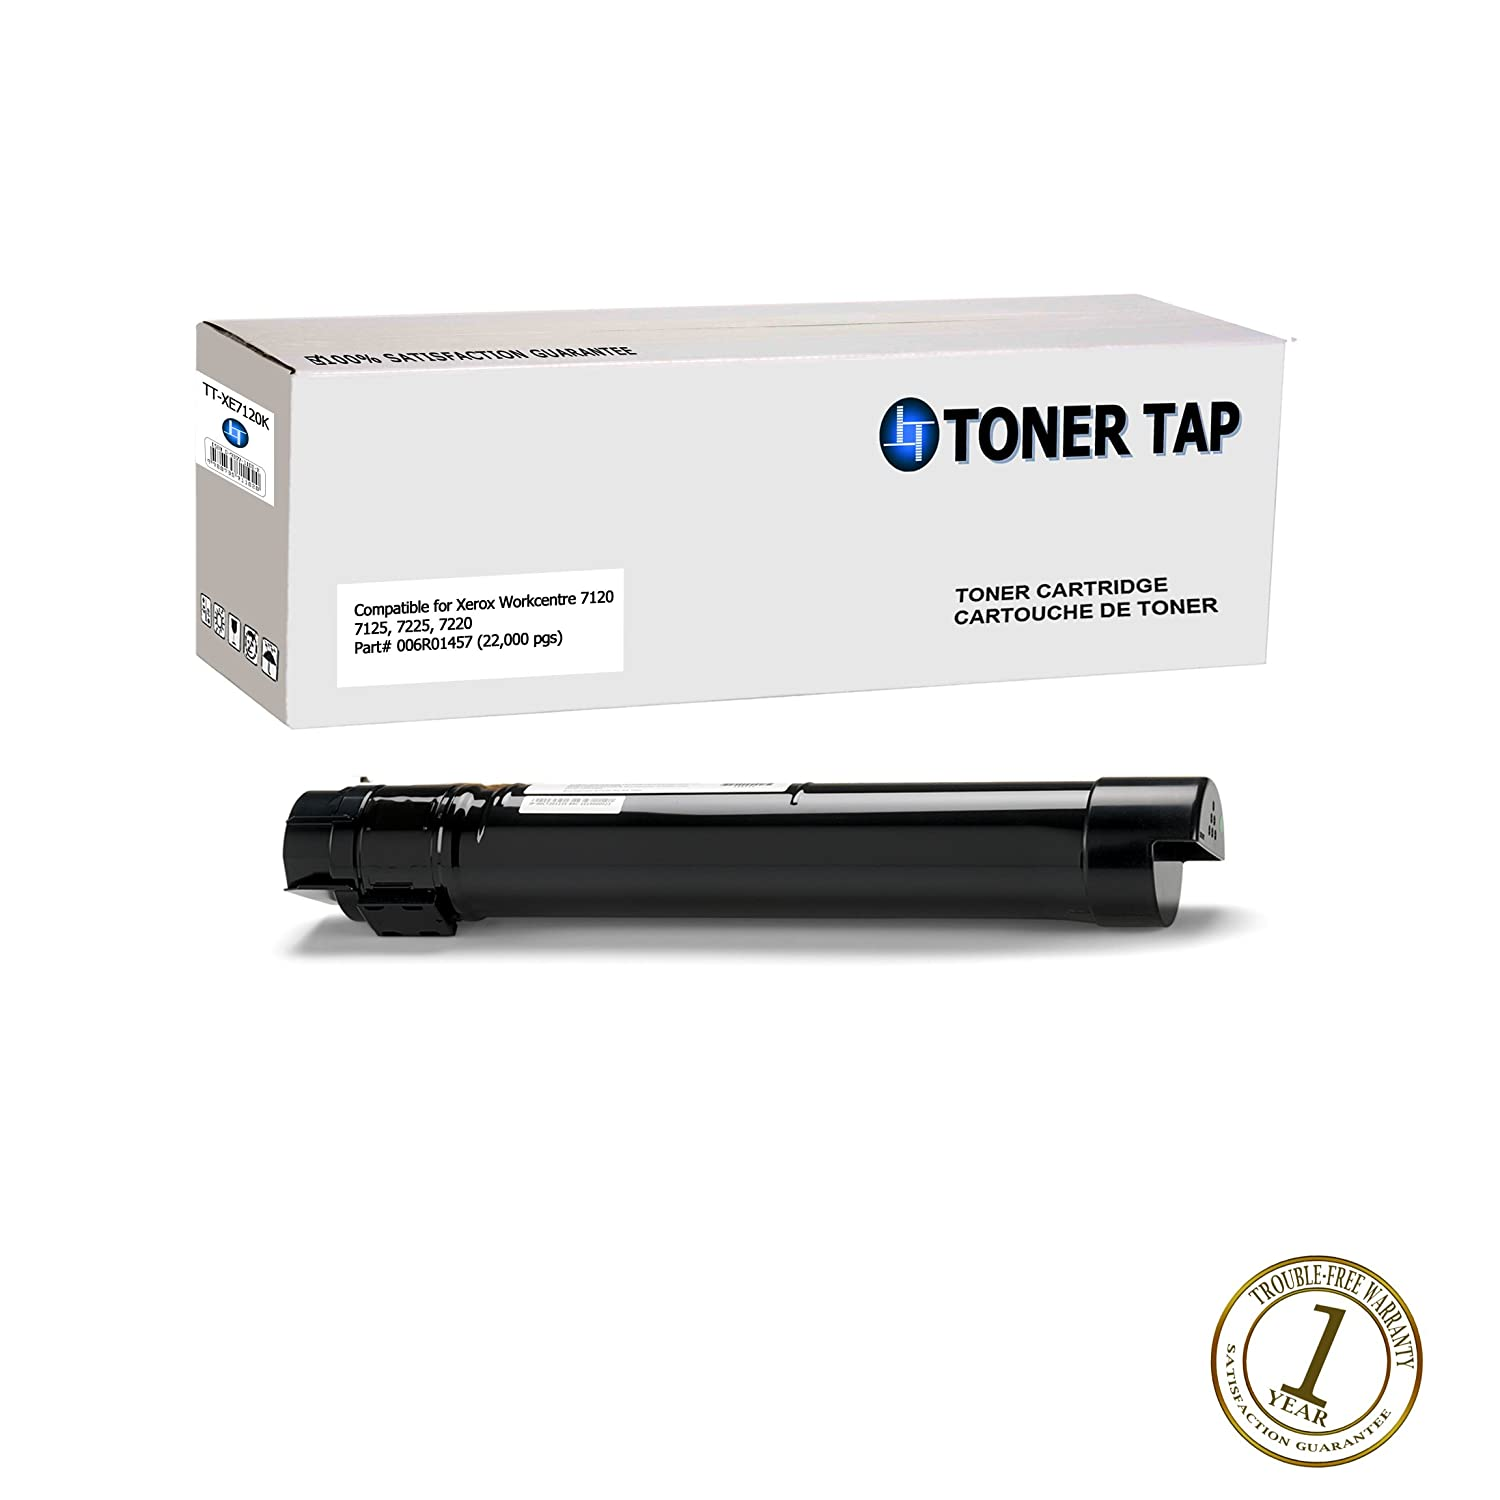 Amazon com toner tap compatibles for xerox workcentre 7120 7125 7225 7220 006r01460 006r01459 006r01458 006r01457 value pack full set bcmy